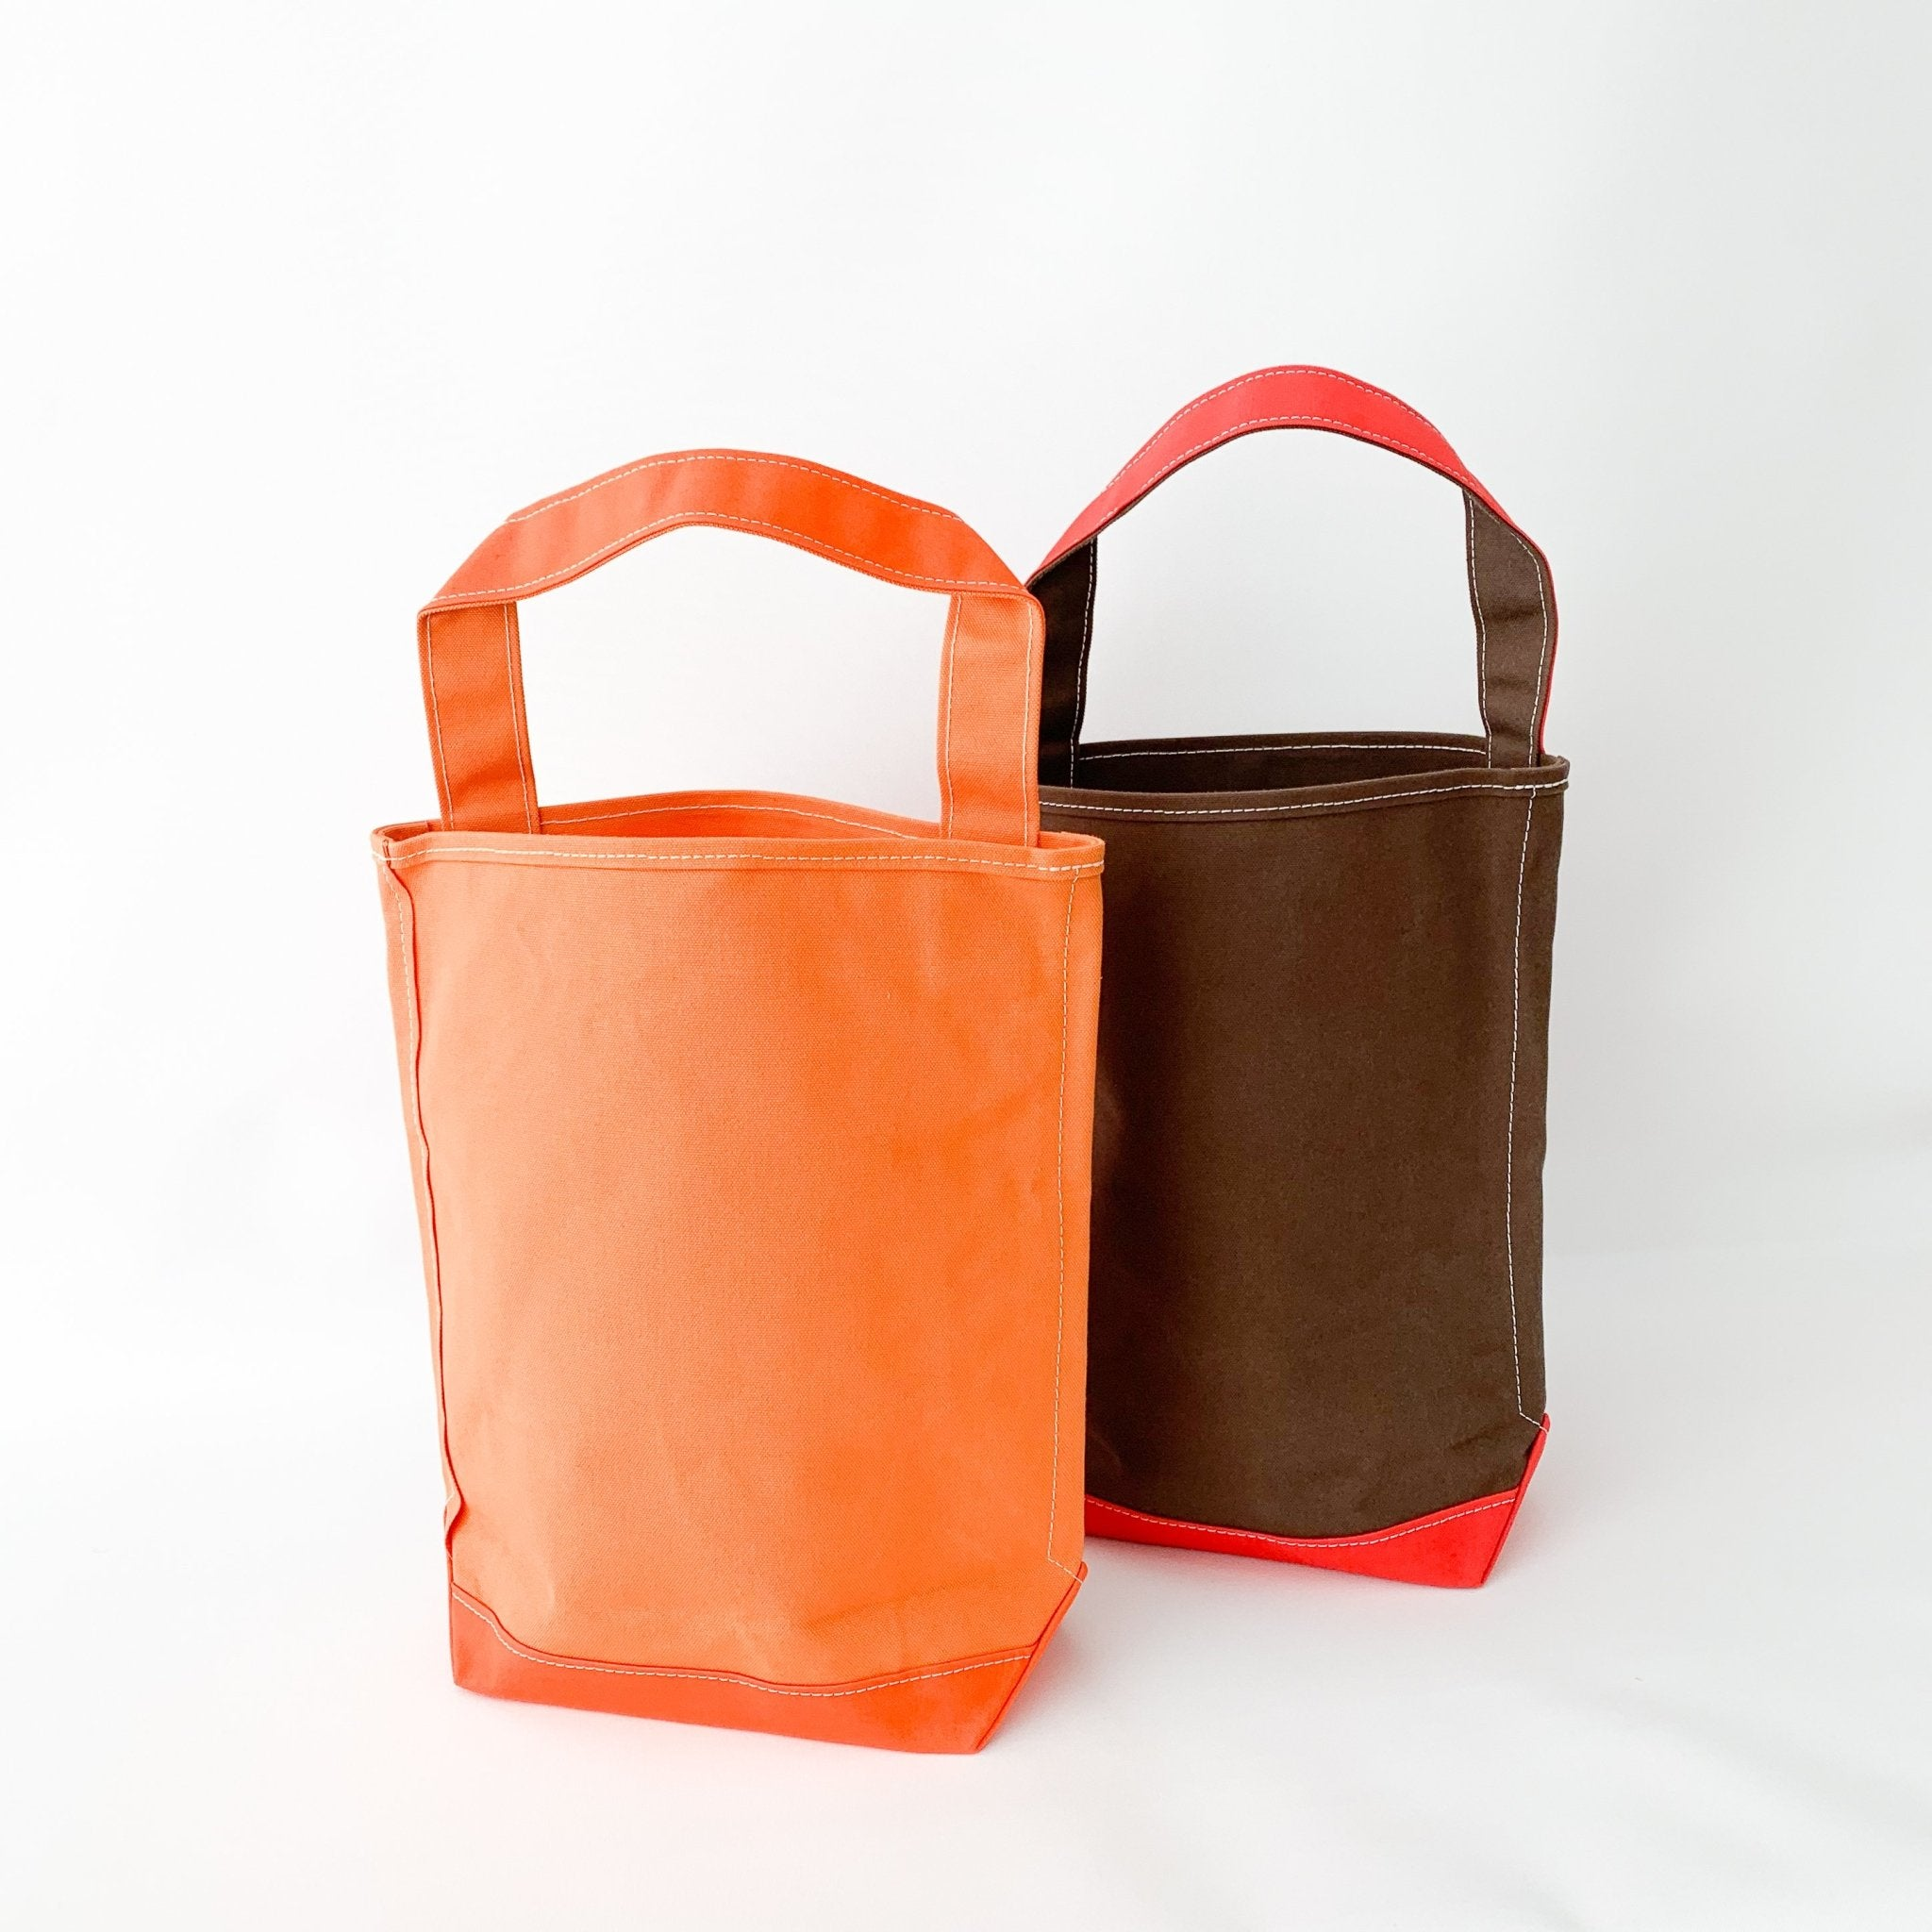 Tembea Canvas One Handle Bag - tortoise general store